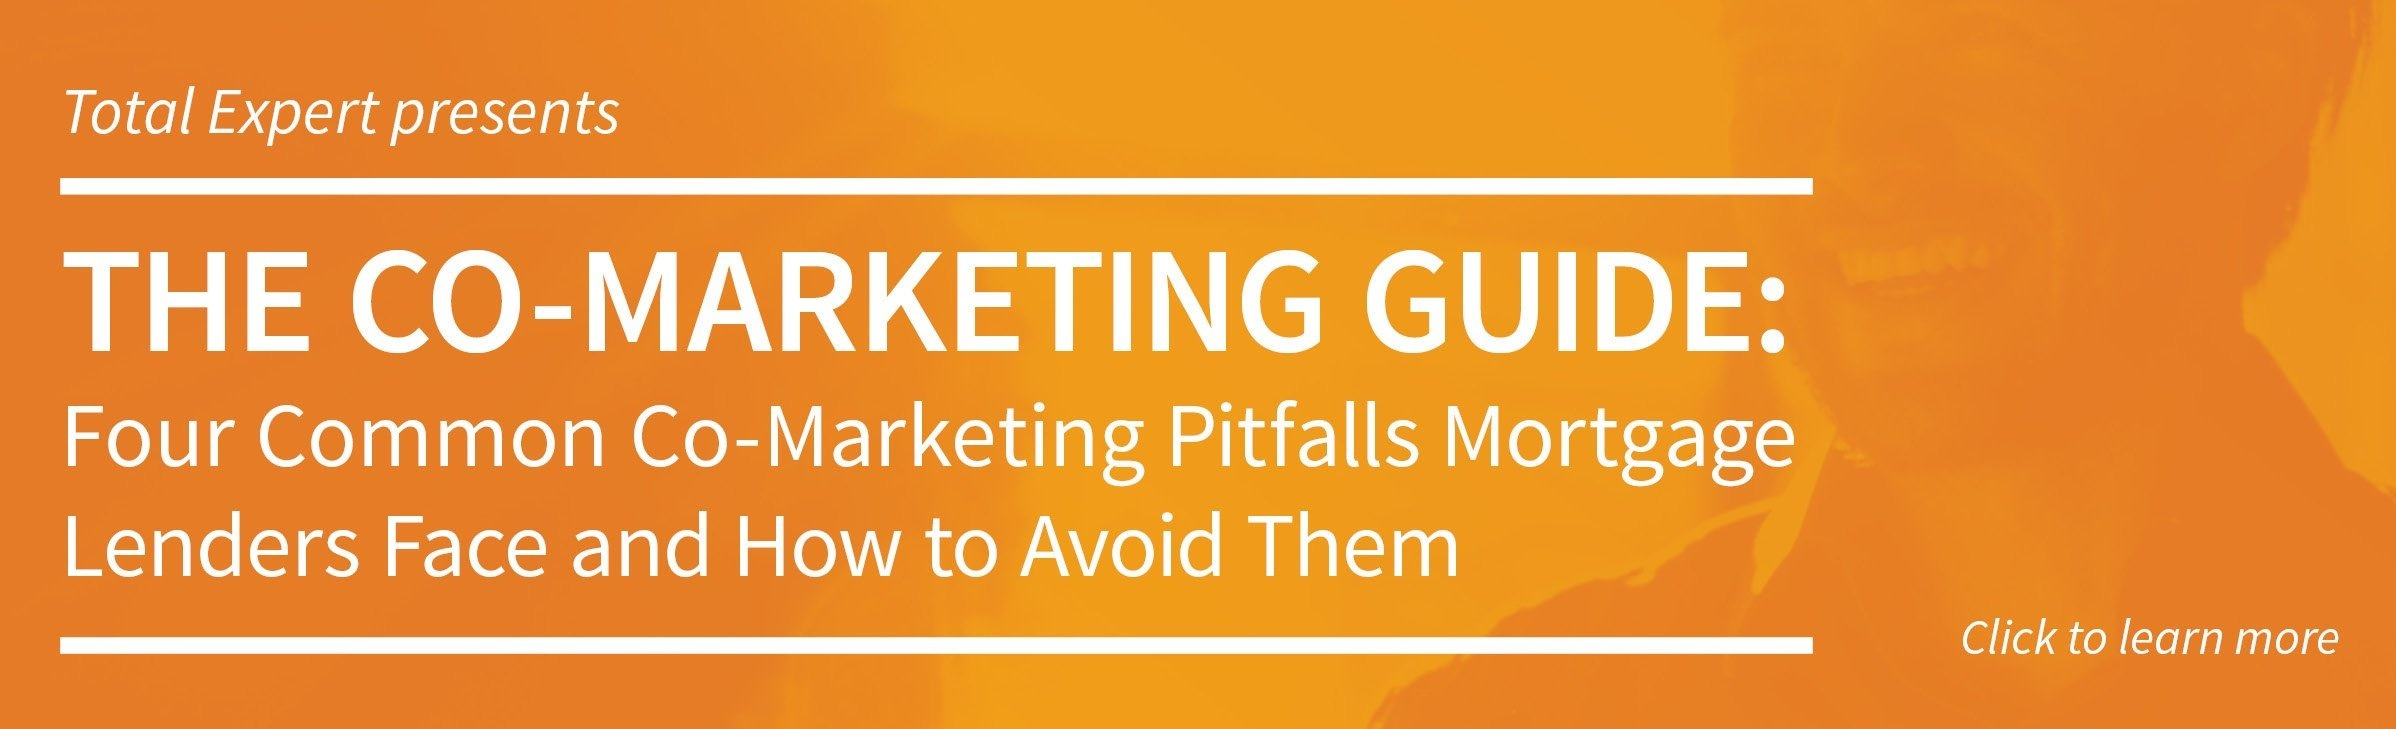 Co-Marketing Guide